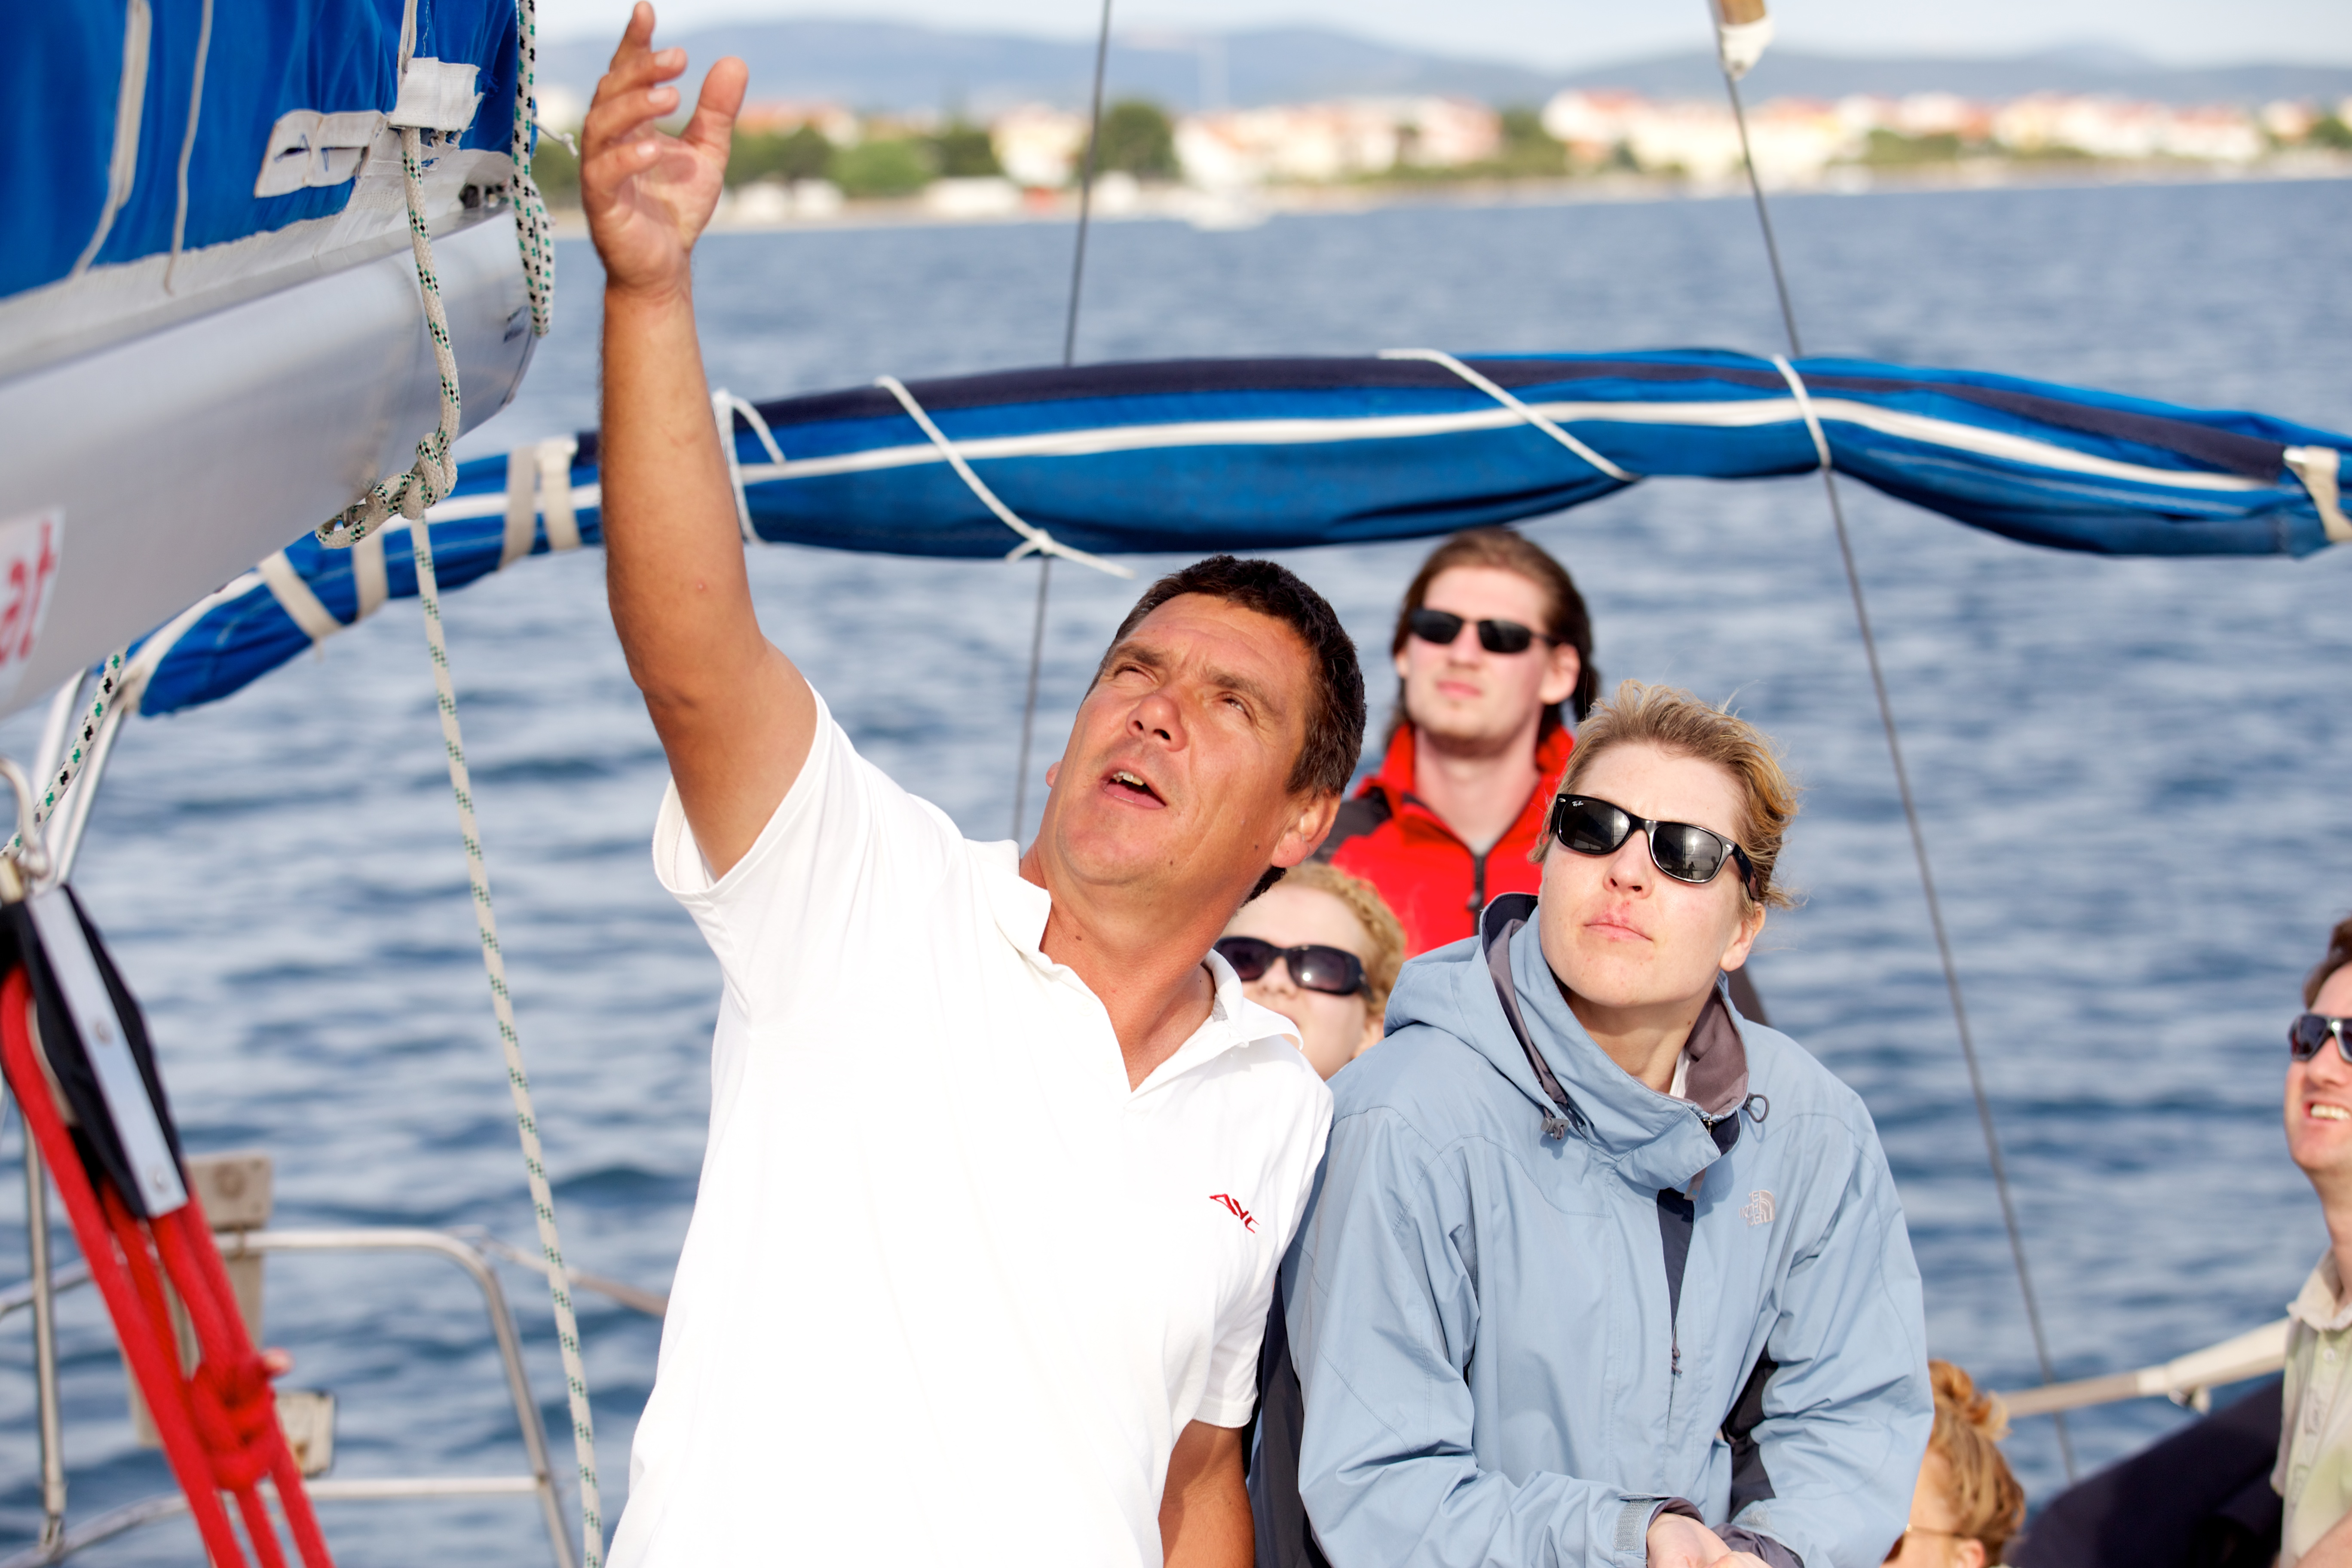 Skipper course in Croatia - go4sailing